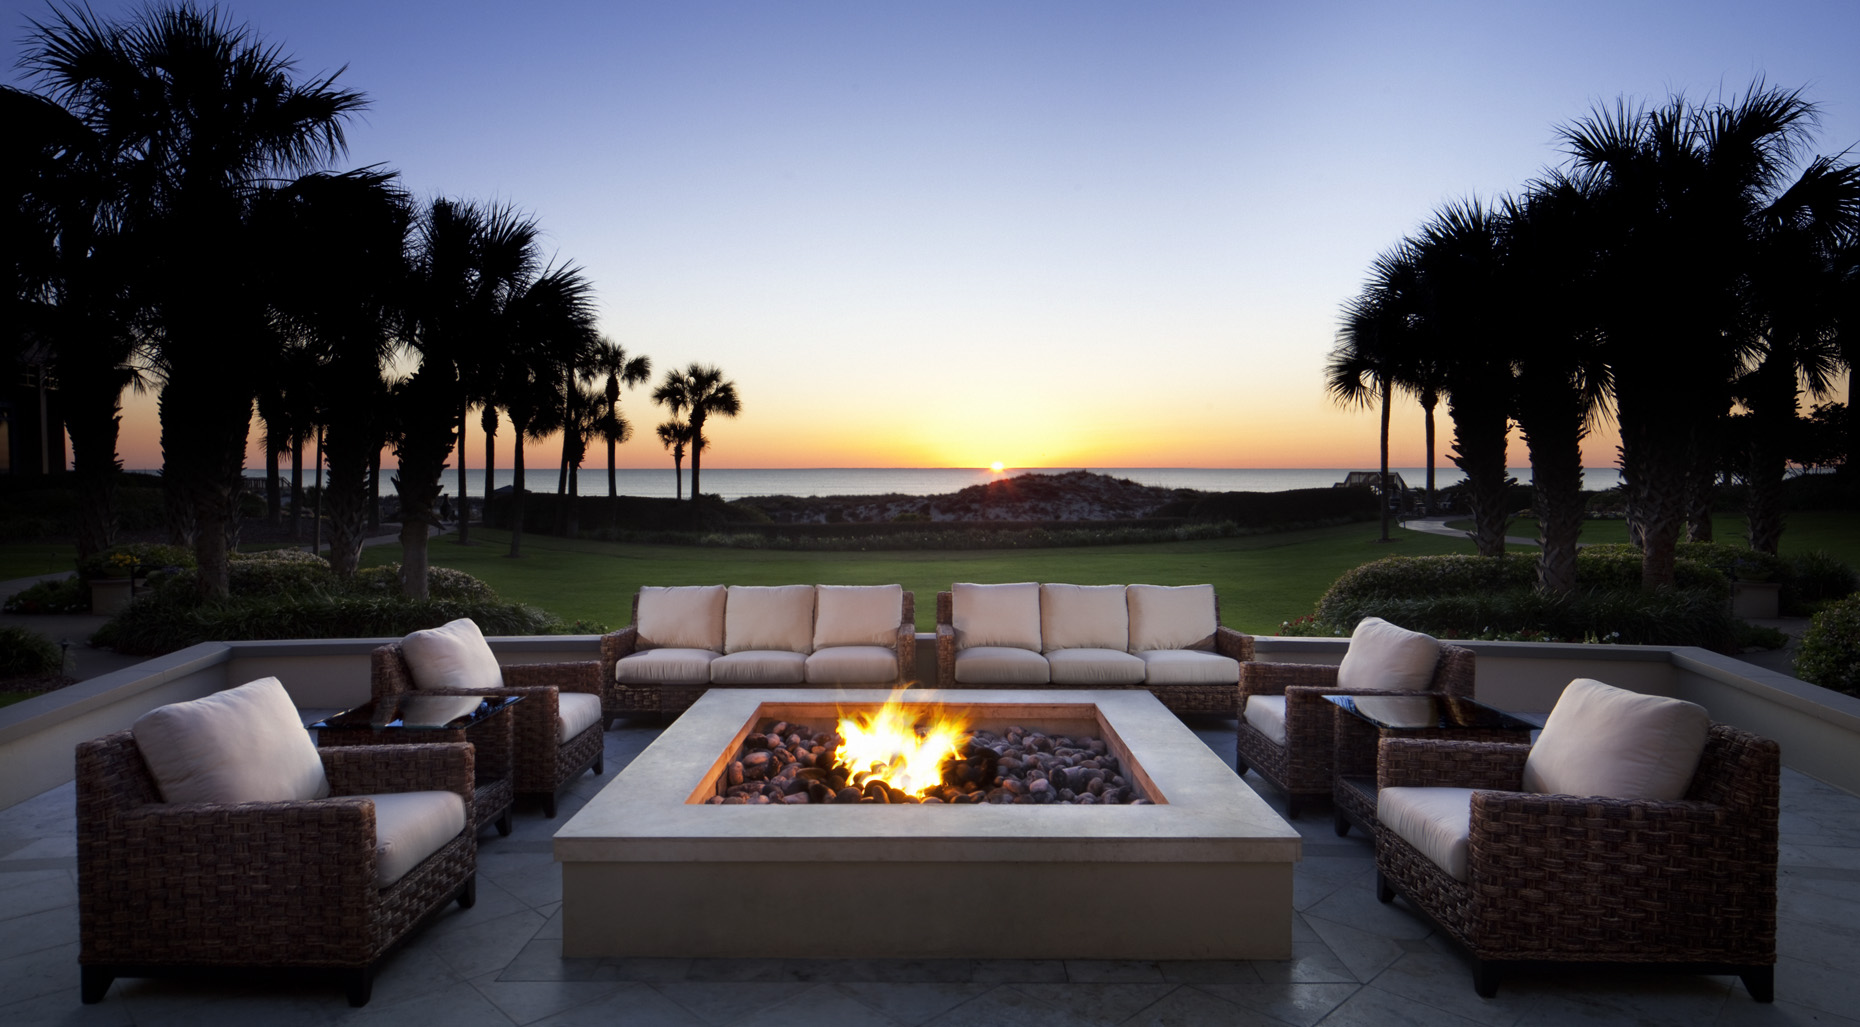 The Ritz-Carlton, Amelia Island outdoor fire pit | U.S.A. |